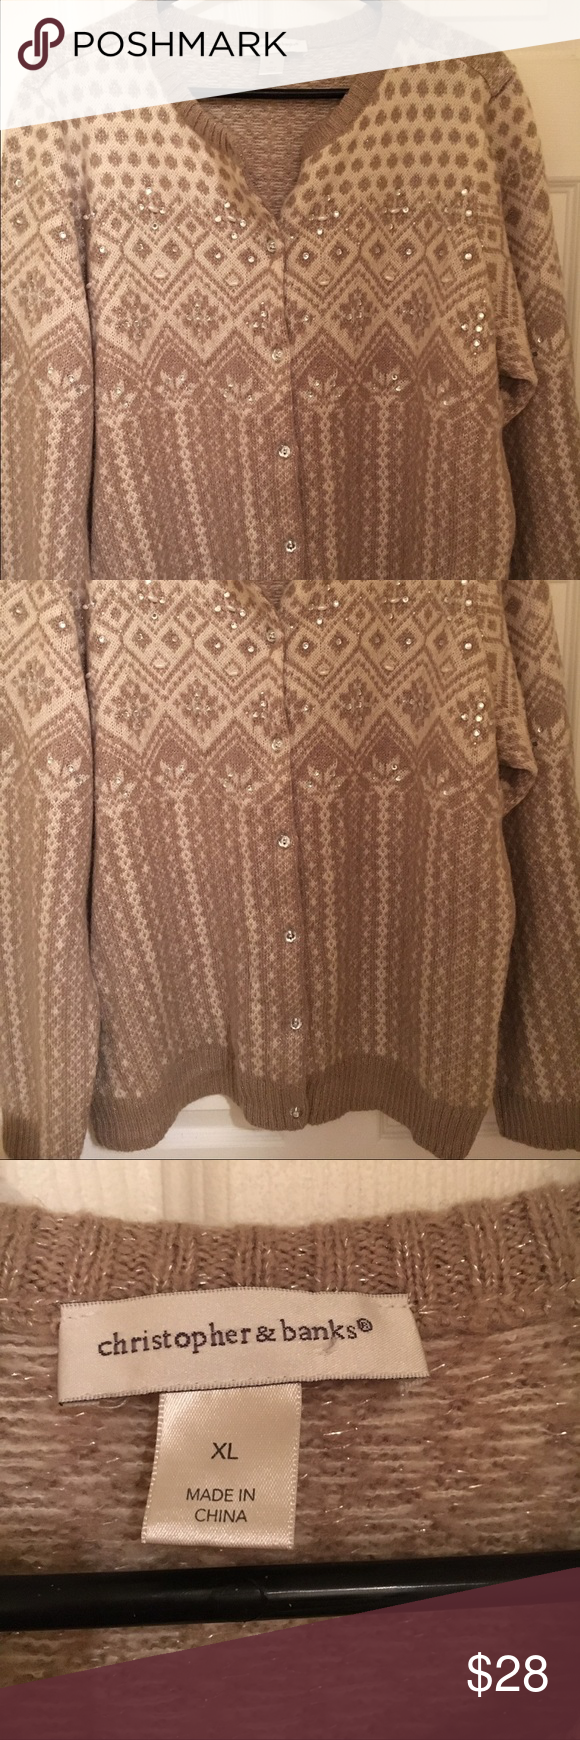 "Christopher Banks Soft Sweater A button-down, elegant looking sweater from Christopher Banks. Size XL. Picture hopefully shows the softness and elegant ""jewels"" embedded in a decorative pattern. There are no snags. Hardly worn; excellent, pristine condition. Smoke-free home Christopher & Banks Sweaters Cardigans"